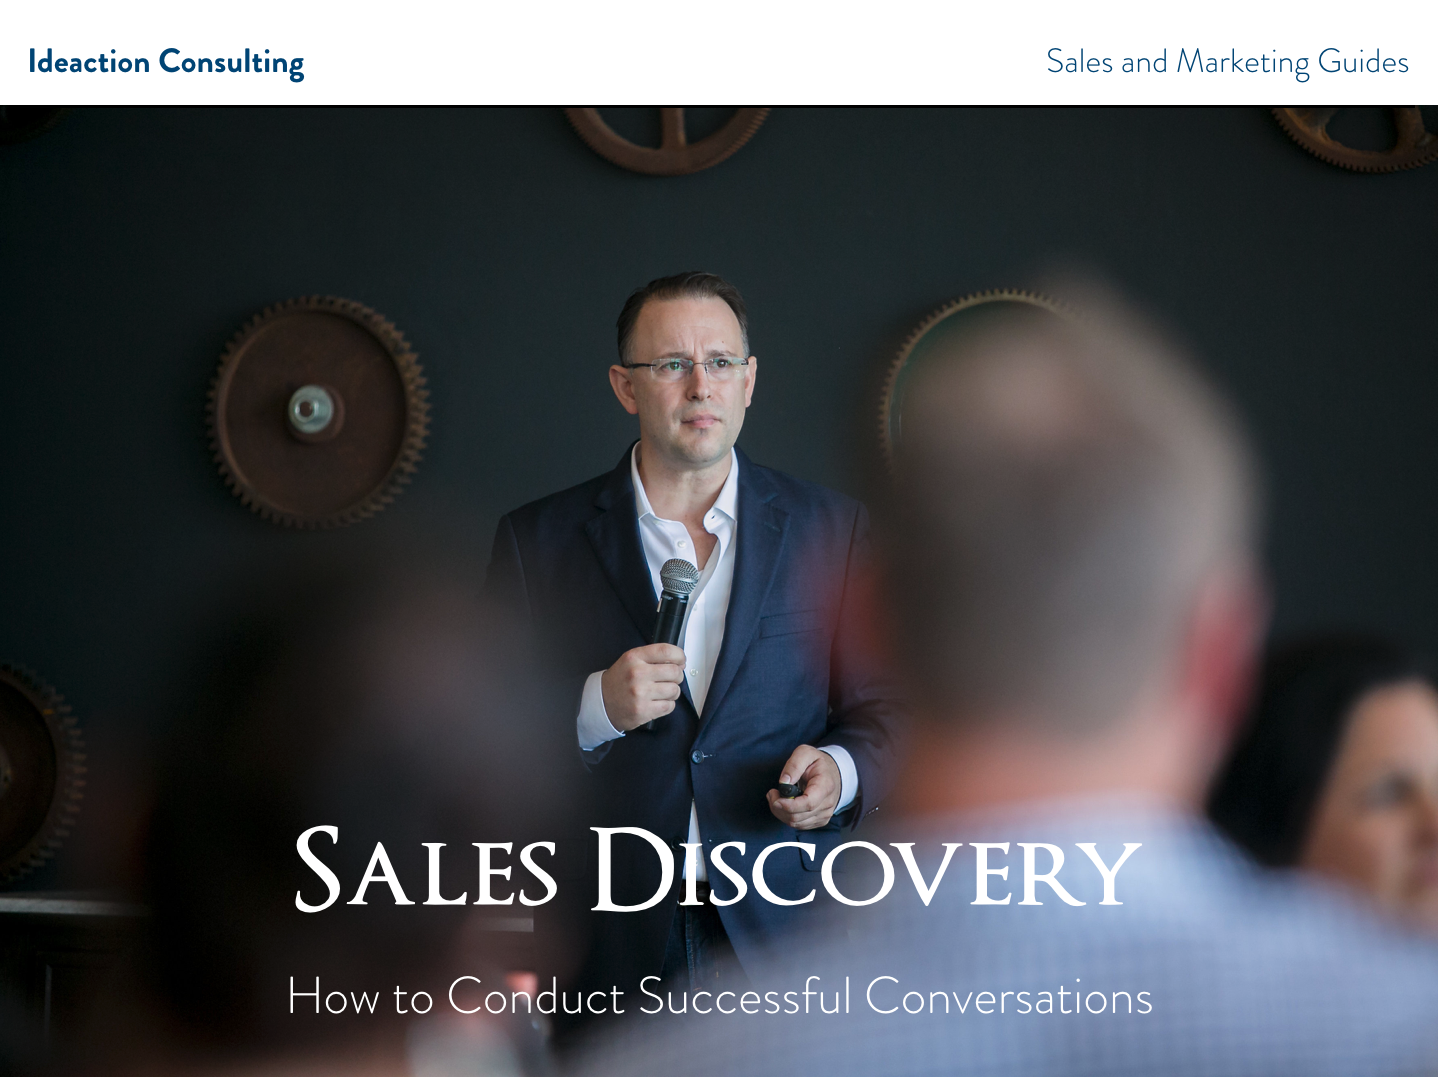 Ideaction Consulting Sales Discovery Download.png